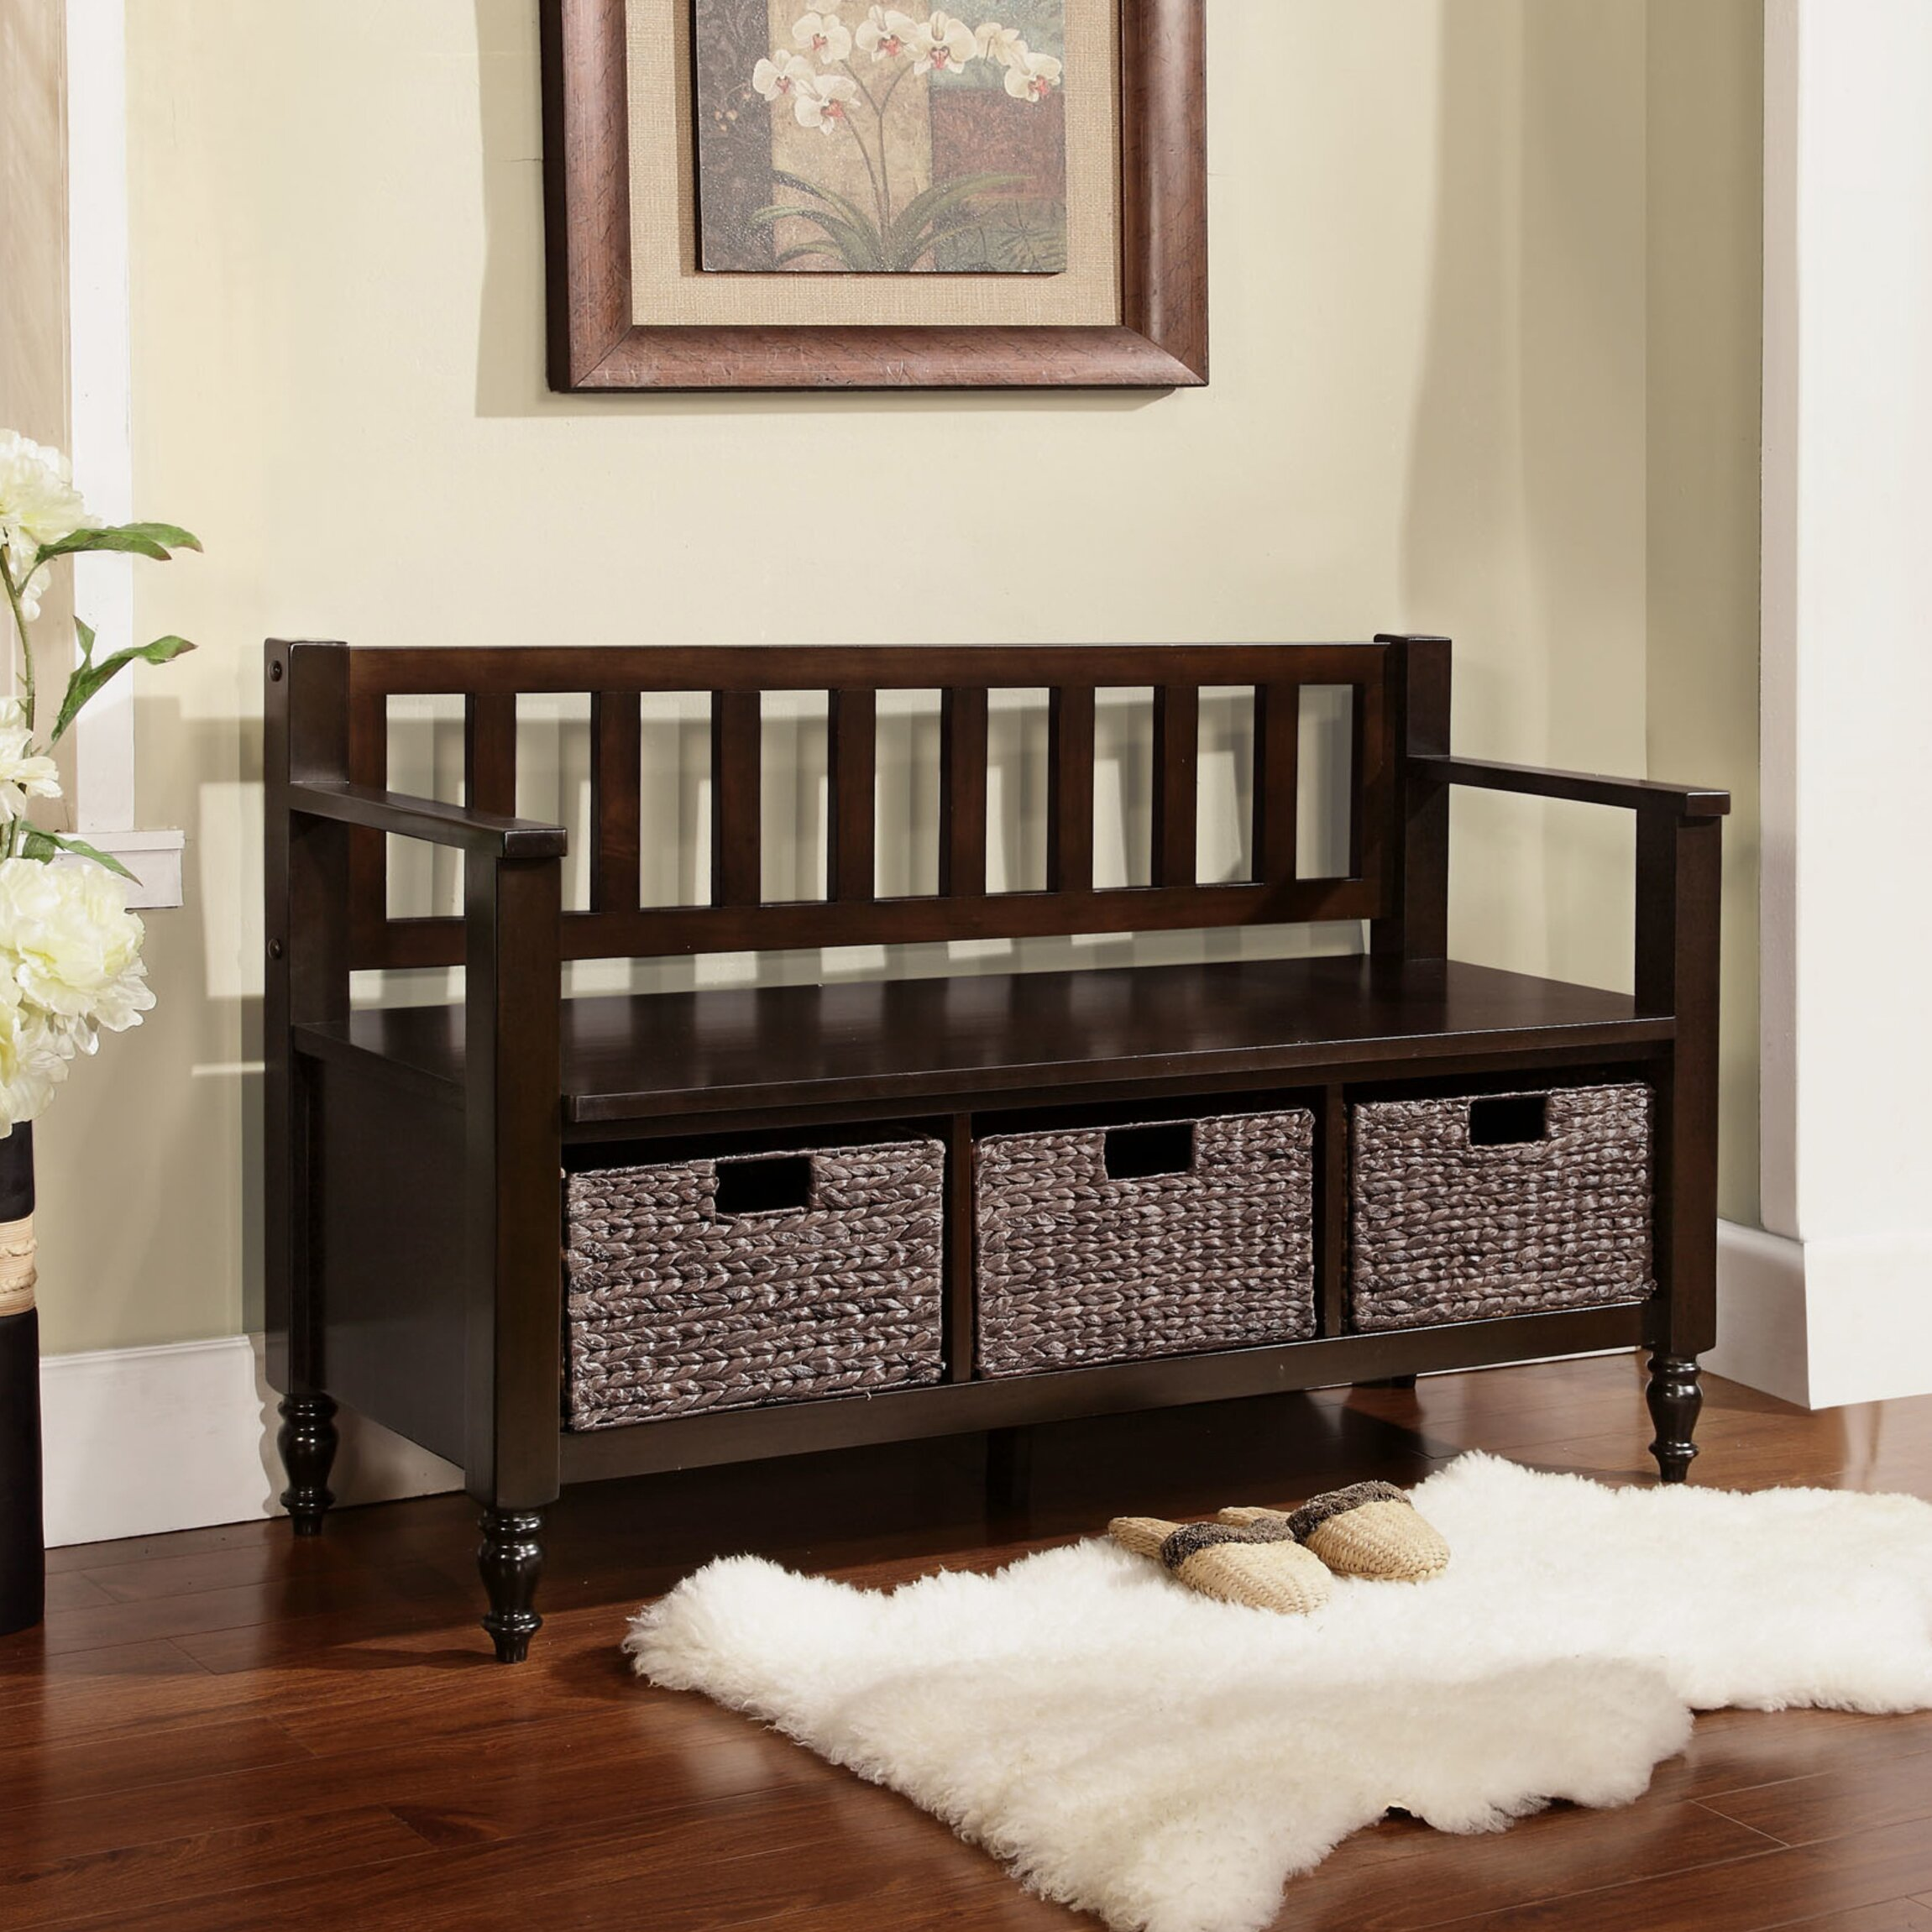 Simpli home dakota entryway bench reviews wayfair Entryway bench and shelf